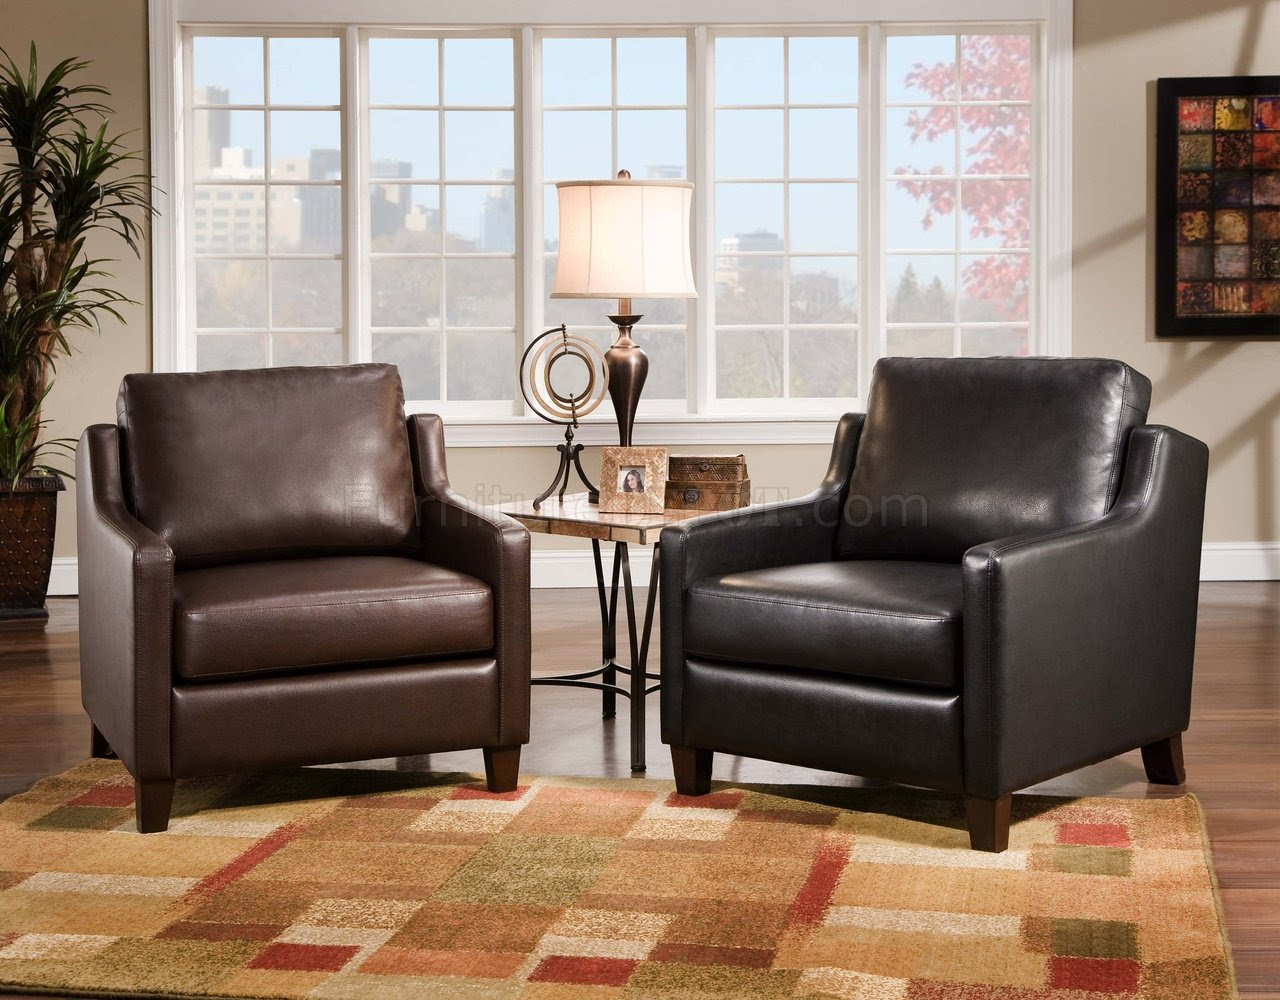 Chair Black Leather Accent Chair